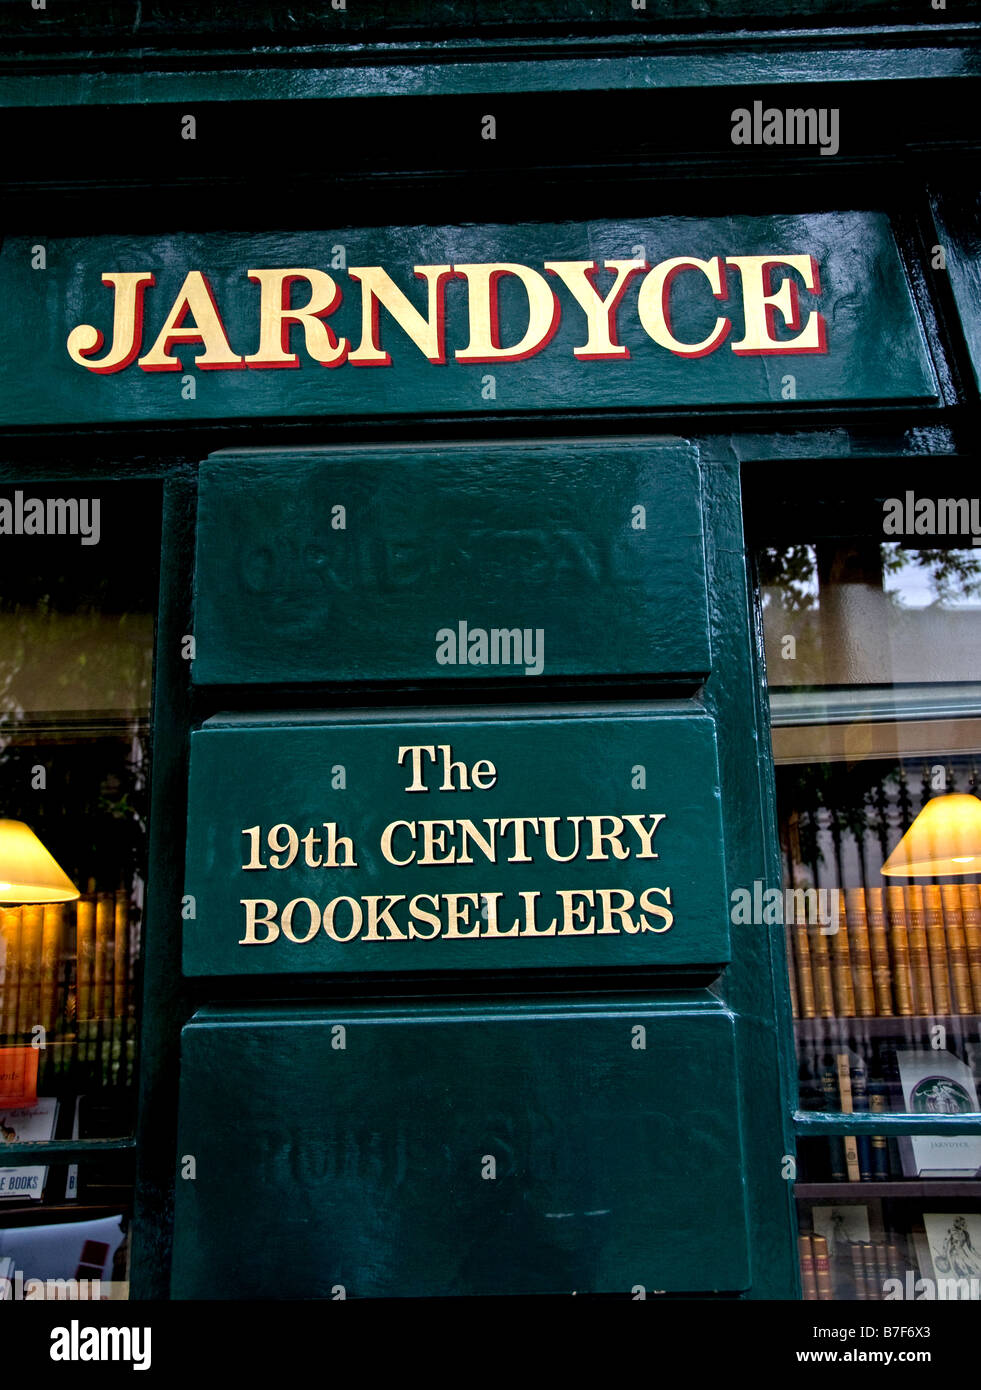 London Jarndyce The 19th Century Booksellers - Stock Image